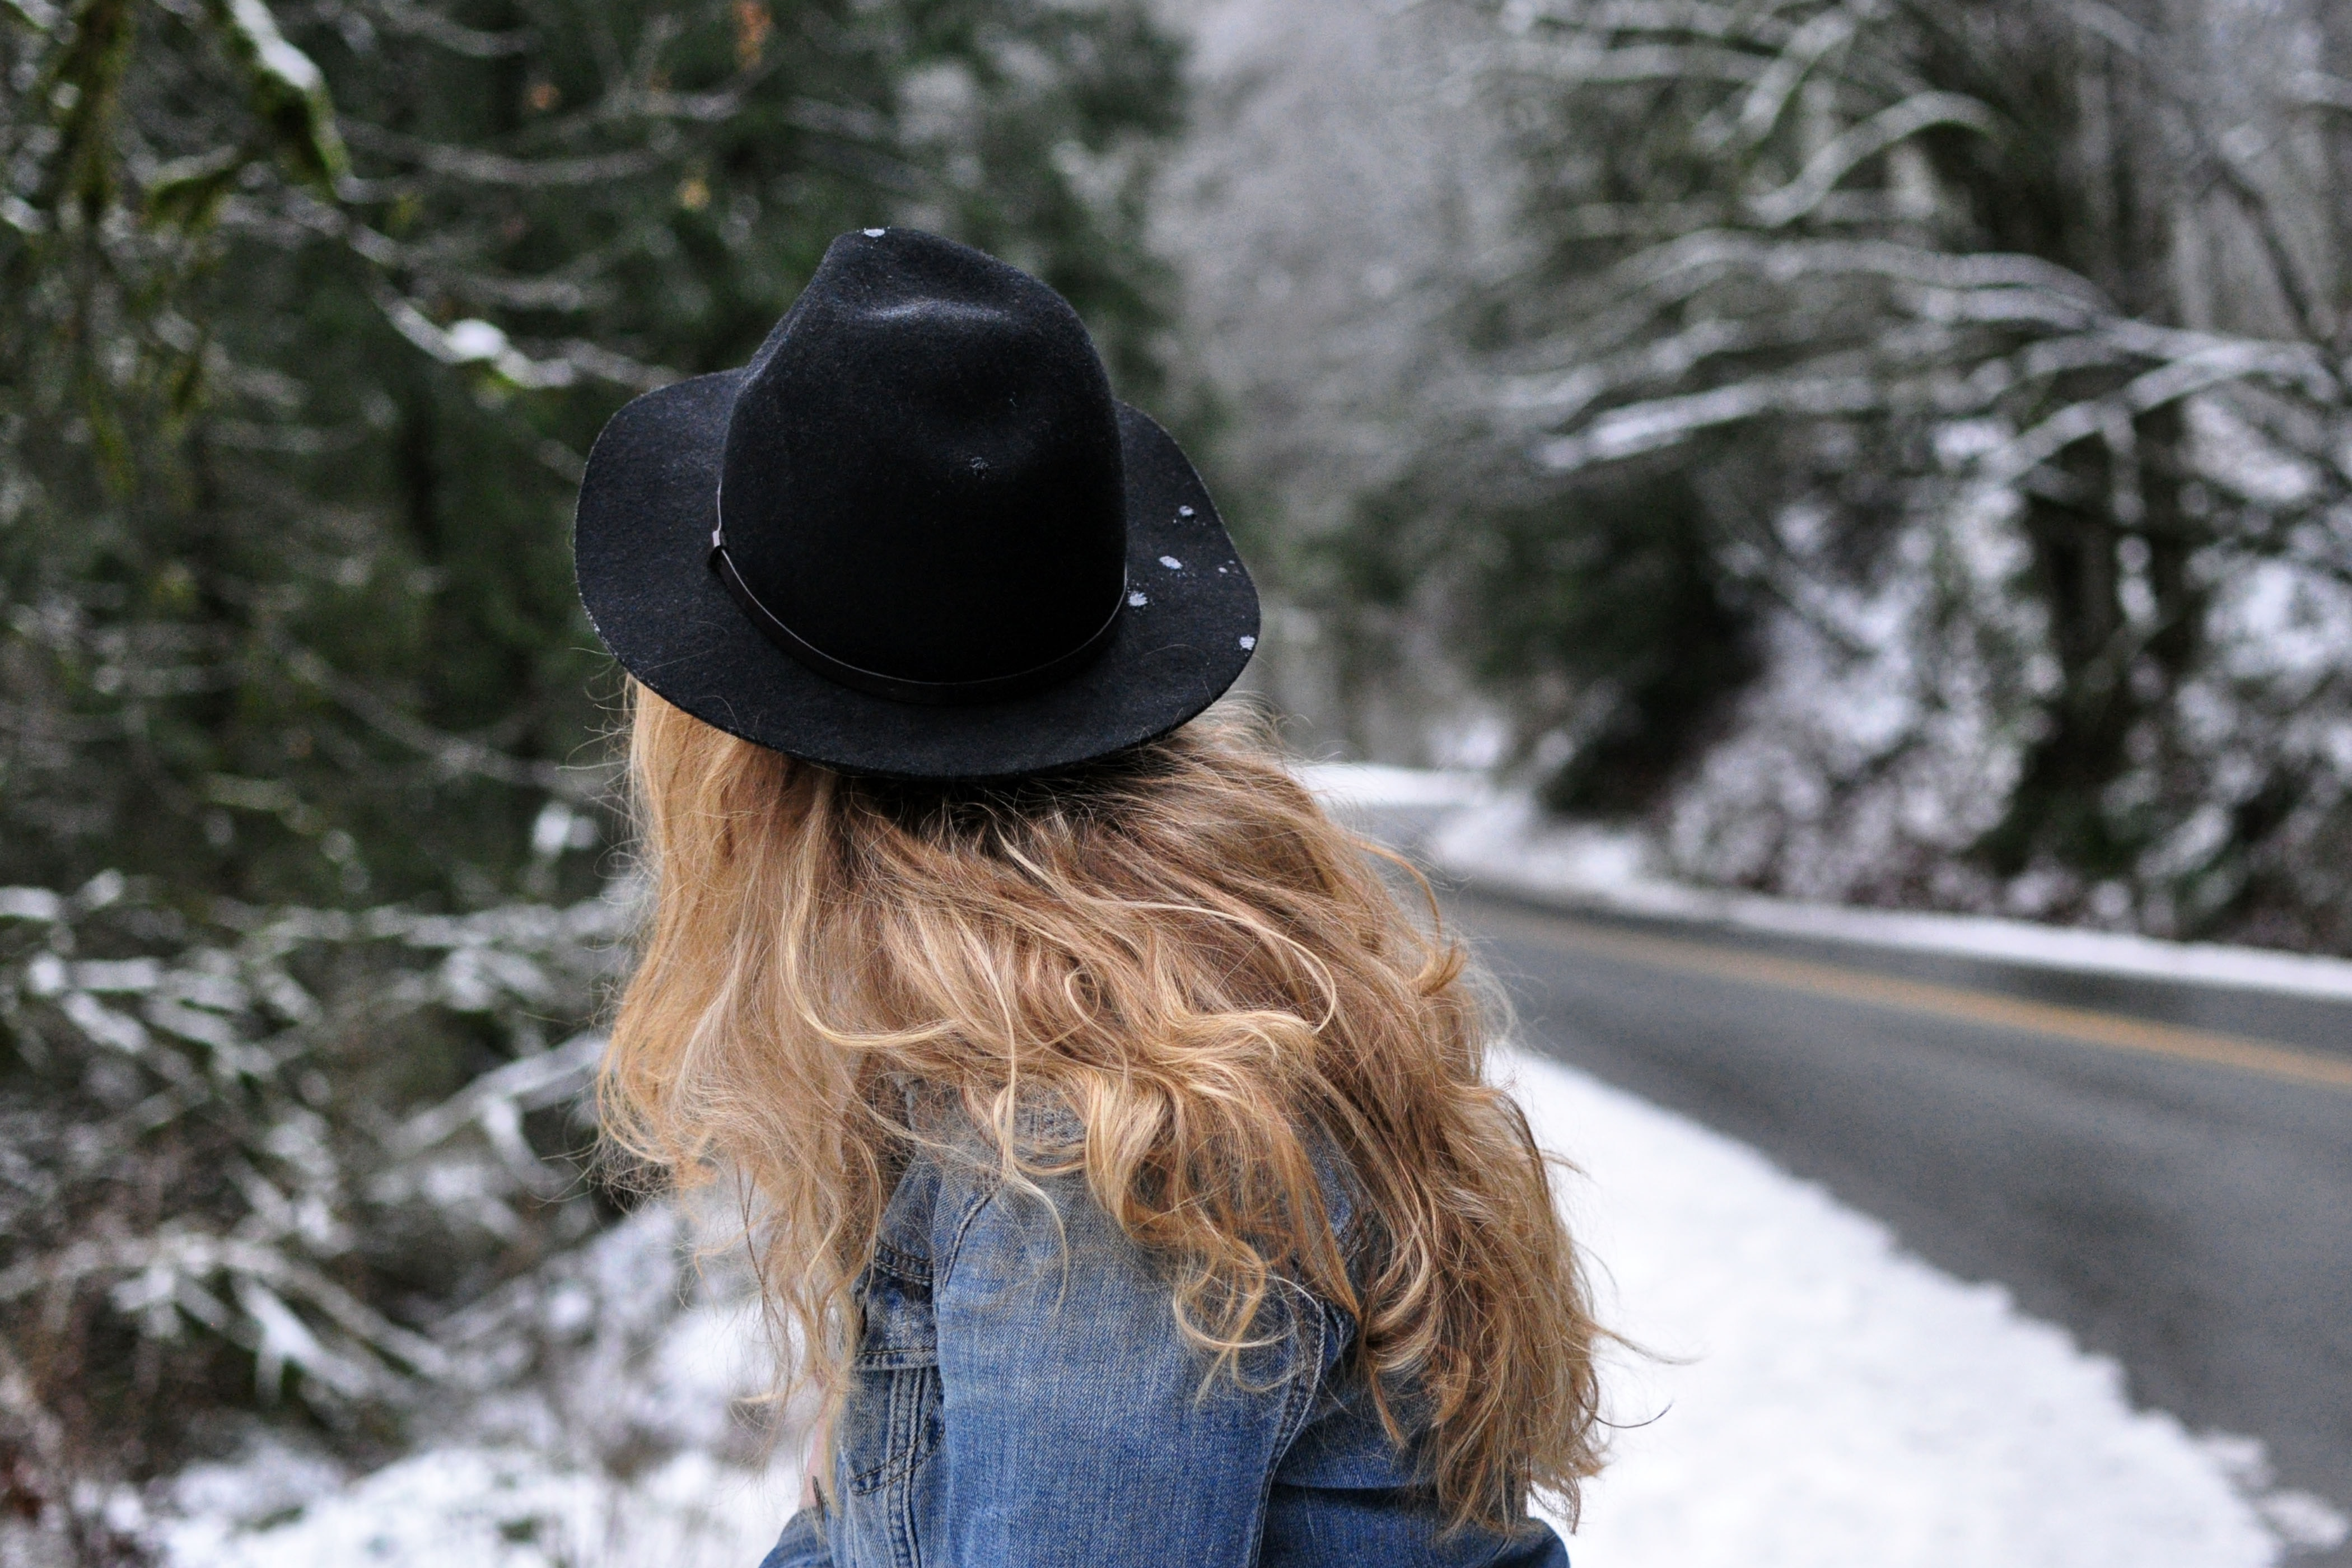 woman wearing blue denim jacket and black cowboy hat near road